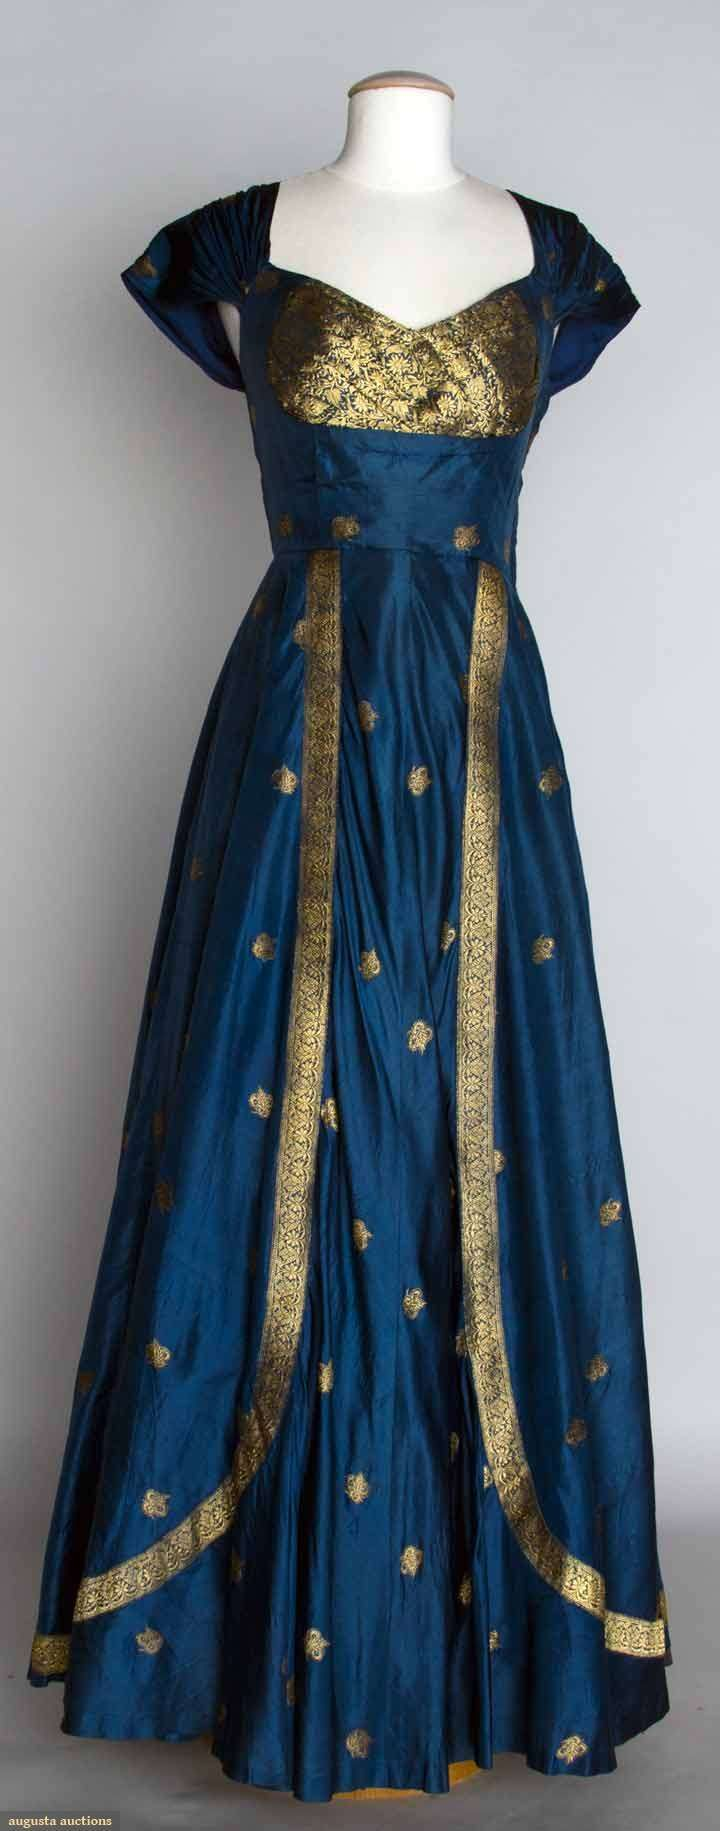 1950 Blue silk taffeta w/ metallic gold brocade dress, fashioned from Indian sari. Rather than gold make gores and tuck in pleated off white fabric at the waste and at the chest, smooth there.